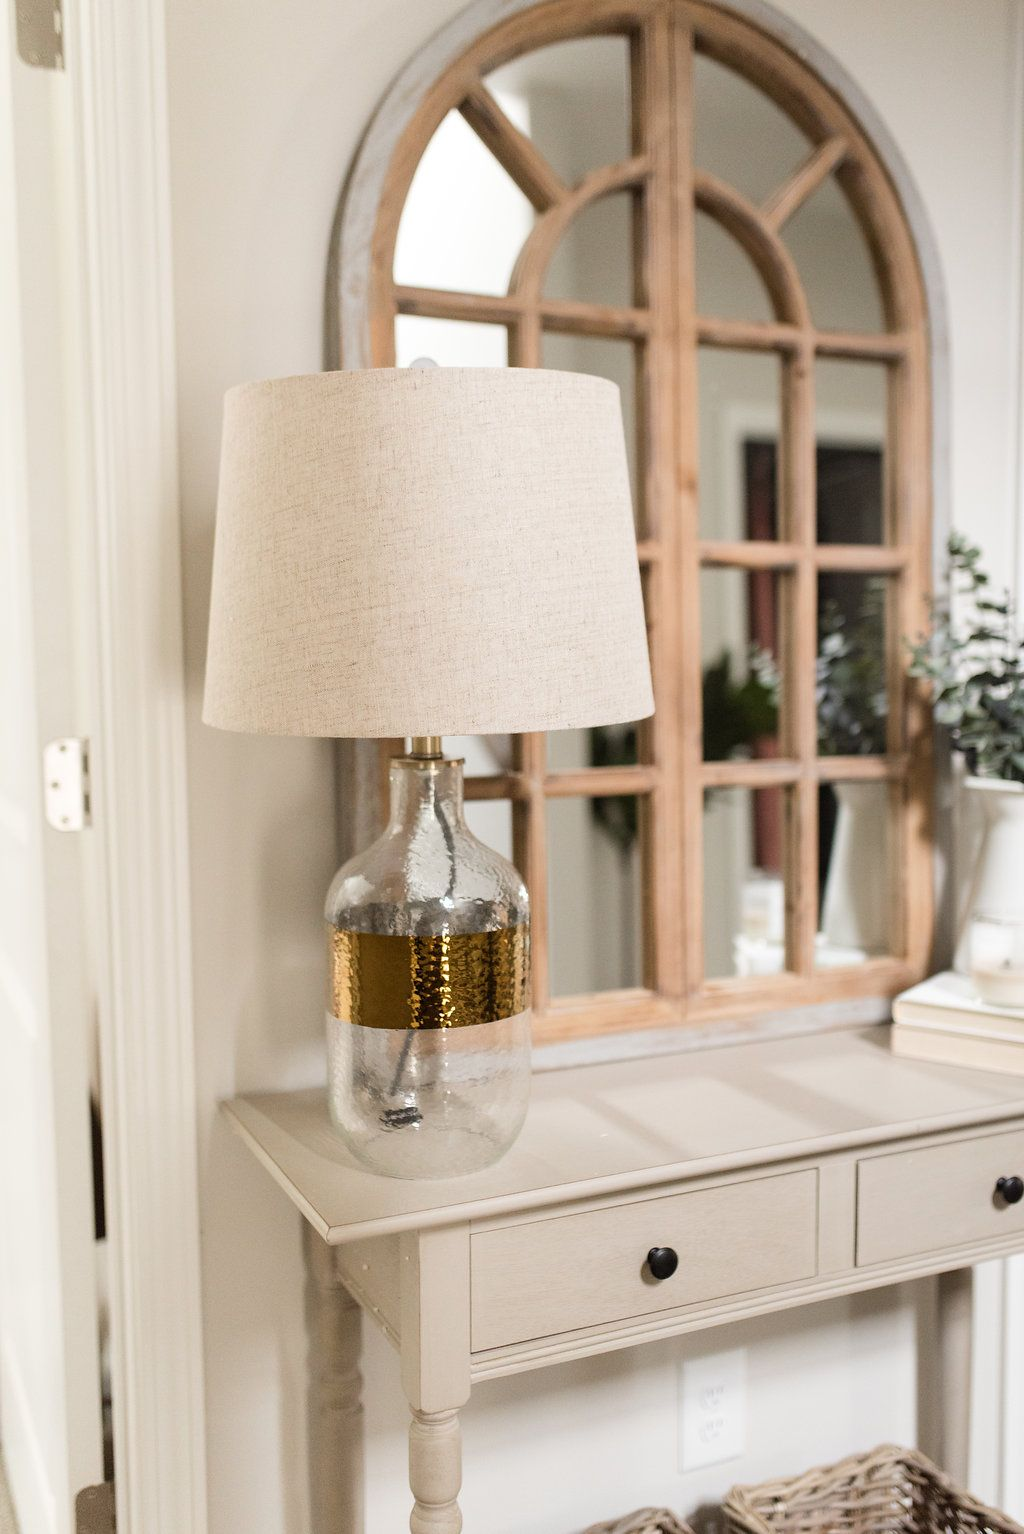 Hallway Refresh with Home Depot by Home, Home depot